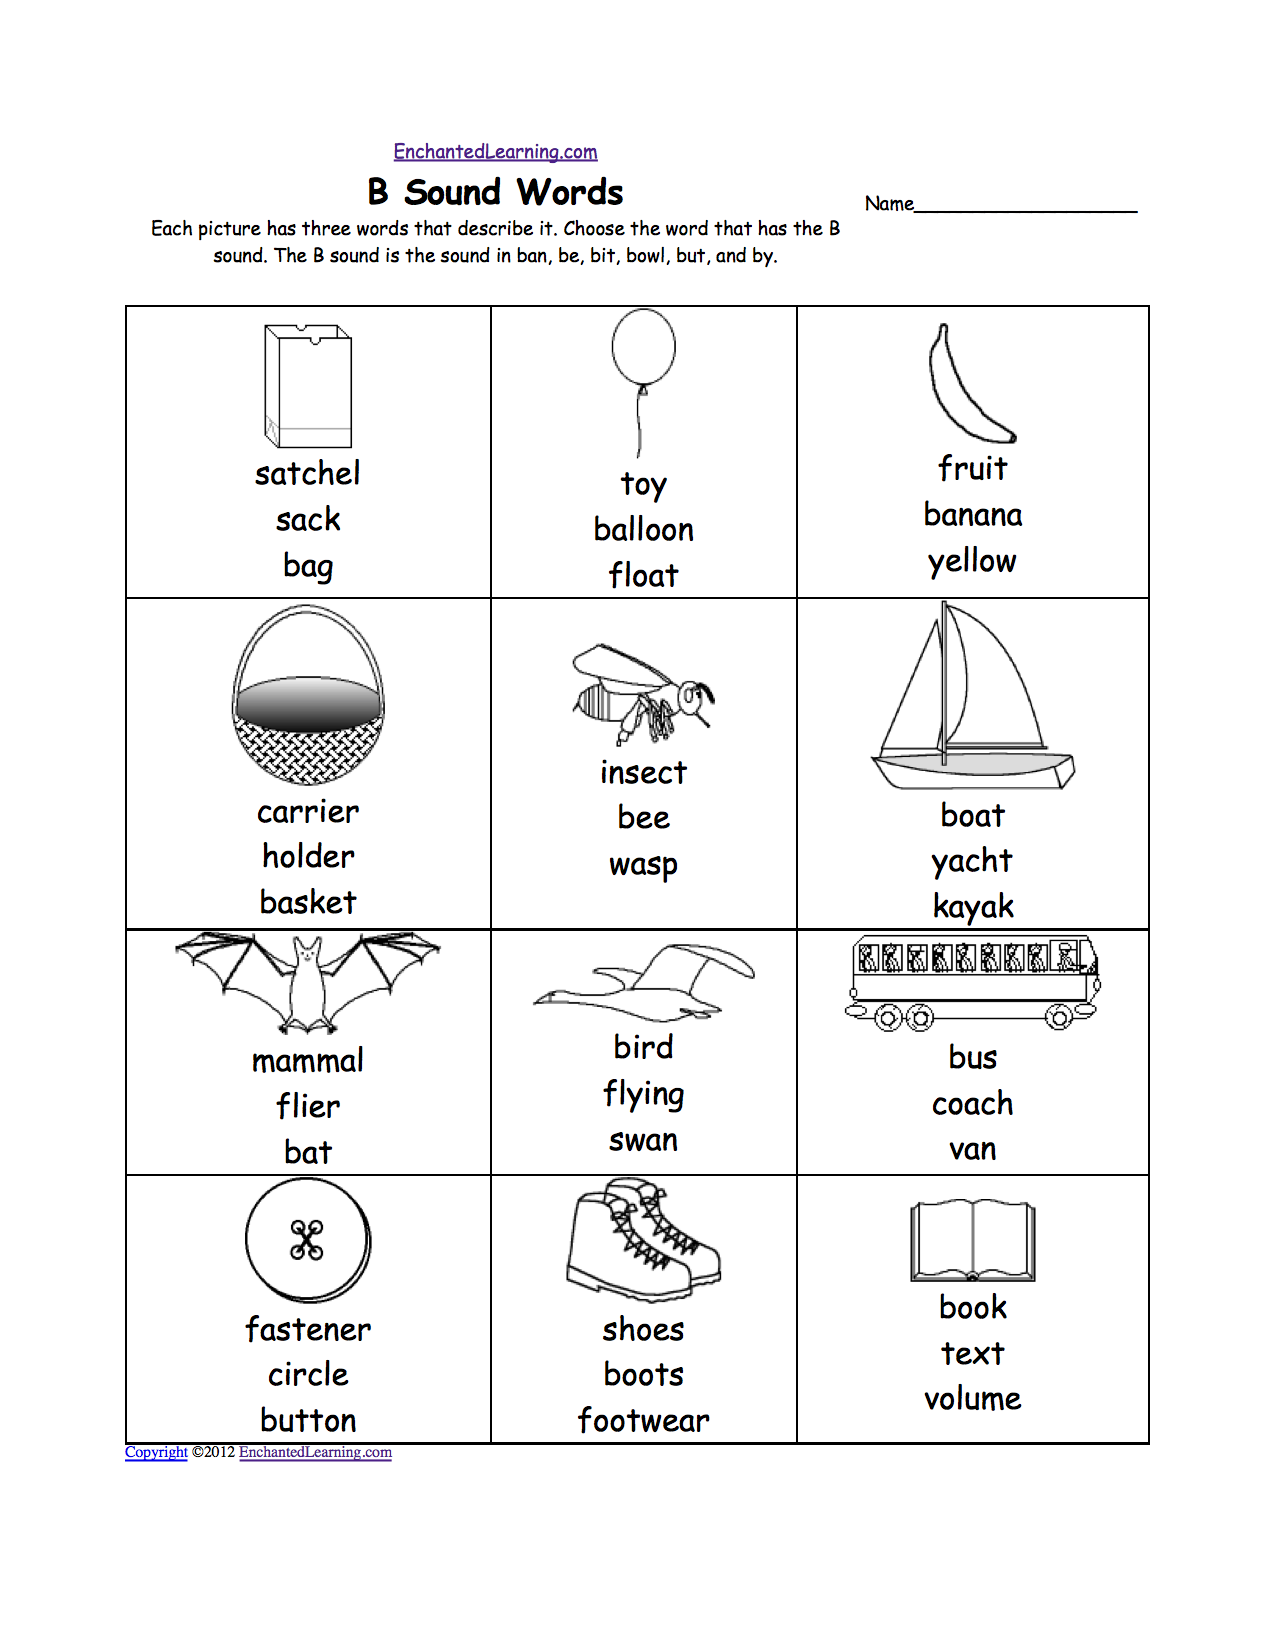 Weirdmailus  Stunning Phonics Worksheets Multiple Choice Worksheets To Print  With Handsome Quotbquot Sound Phonics Worksheet Multiple Choice Each Picture Has Three Words That Describe It Choose The Word That Has A Quotbquot Sound The Quotbquot Sound Is The Sound  With Divine Describing Words Worksheet For Grade  Also Short Vowel Sound Worksheet In Addition Free Toddler Worksheets Printable And Paul Bunyan Worksheet As Well As Measurement Worksheet Pdf Additionally Grade  Math Subtraction Worksheets From Enchantedlearningcom With Weirdmailus  Handsome Phonics Worksheets Multiple Choice Worksheets To Print  With Divine Quotbquot Sound Phonics Worksheet Multiple Choice Each Picture Has Three Words That Describe It Choose The Word That Has A Quotbquot Sound The Quotbquot Sound Is The Sound  And Stunning Describing Words Worksheet For Grade  Also Short Vowel Sound Worksheet In Addition Free Toddler Worksheets Printable From Enchantedlearningcom